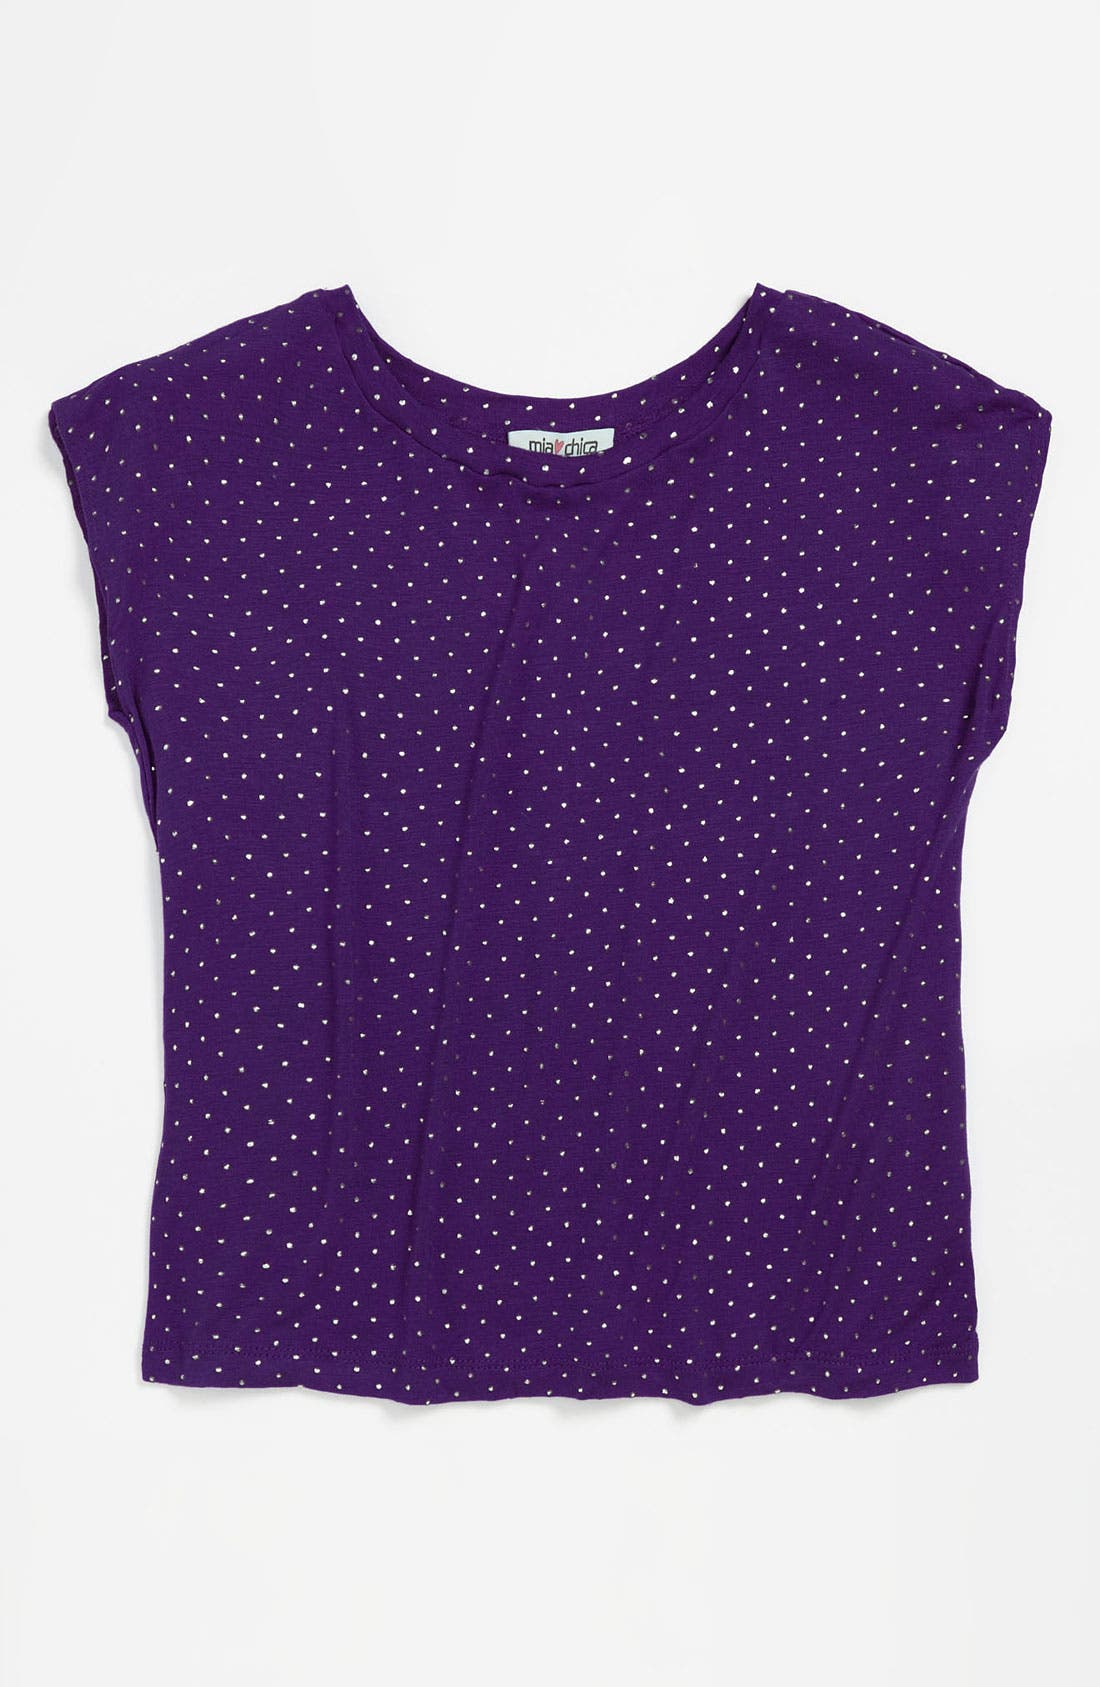 Main Image - Mia Chica Studded Top (Little Girls & Big Girls)